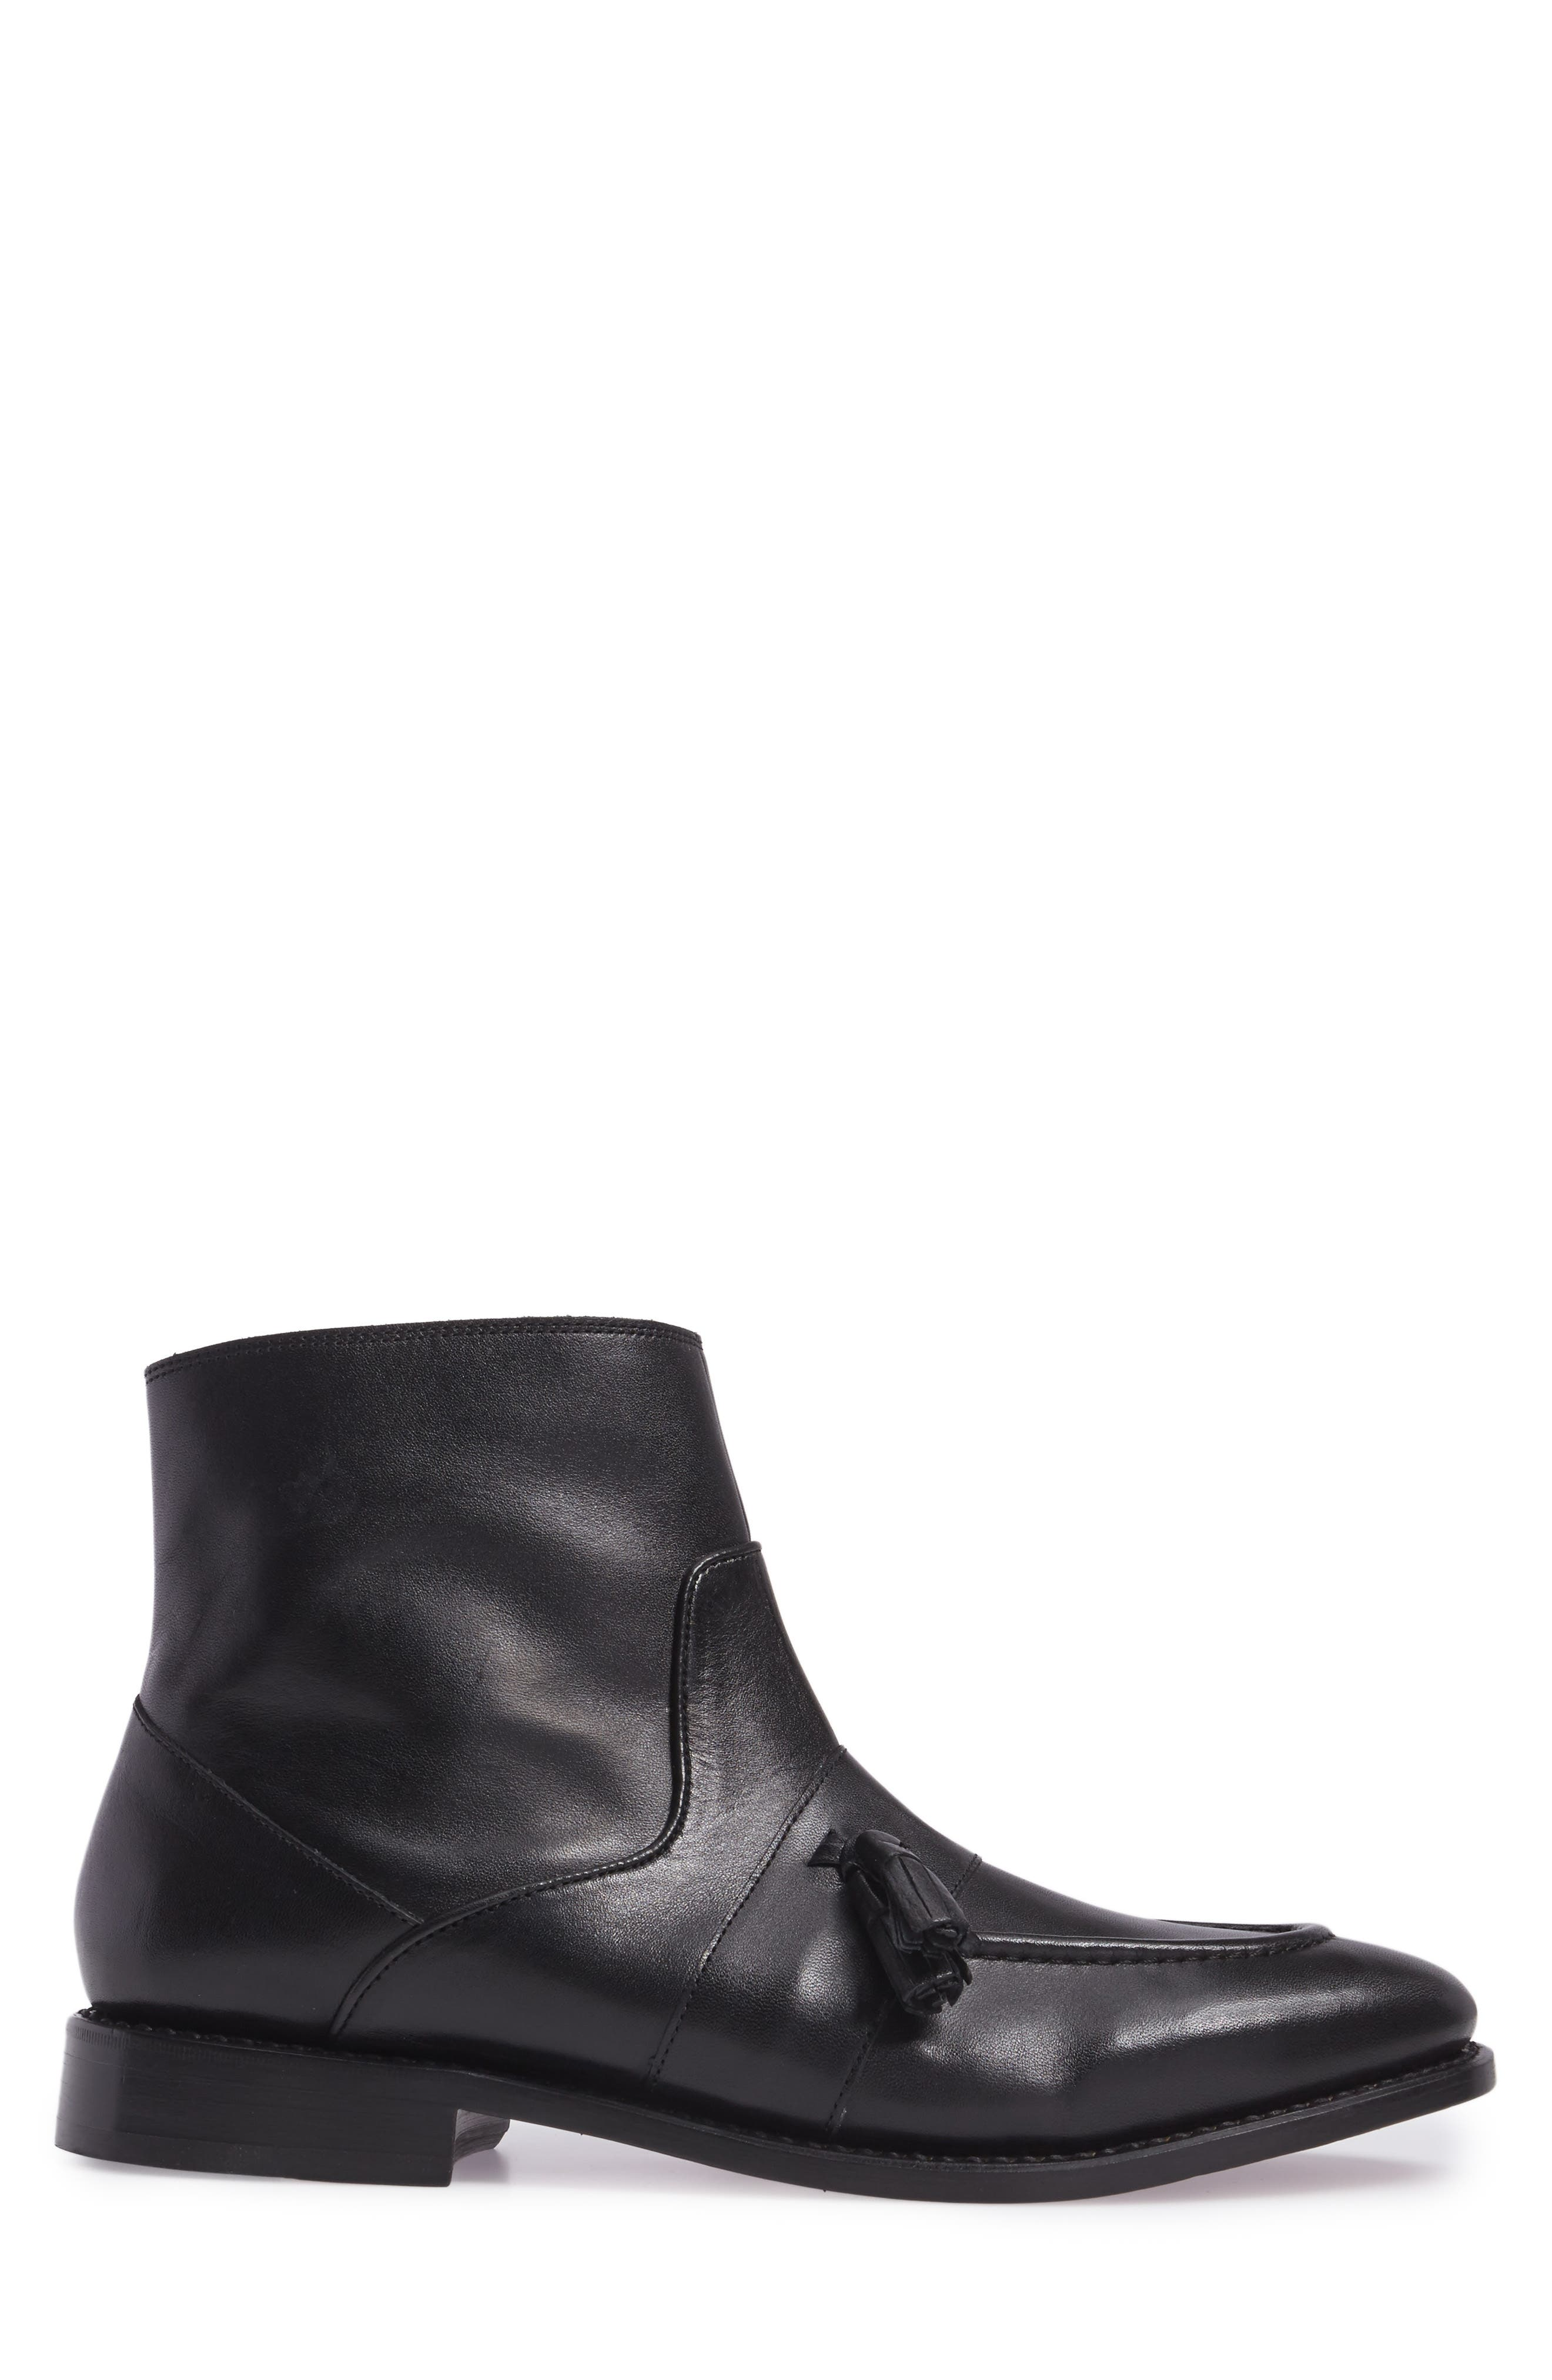 MICHAEL BASTIAN,                             Sidney Zip Boot,                             Alternate thumbnail 3, color,                             011